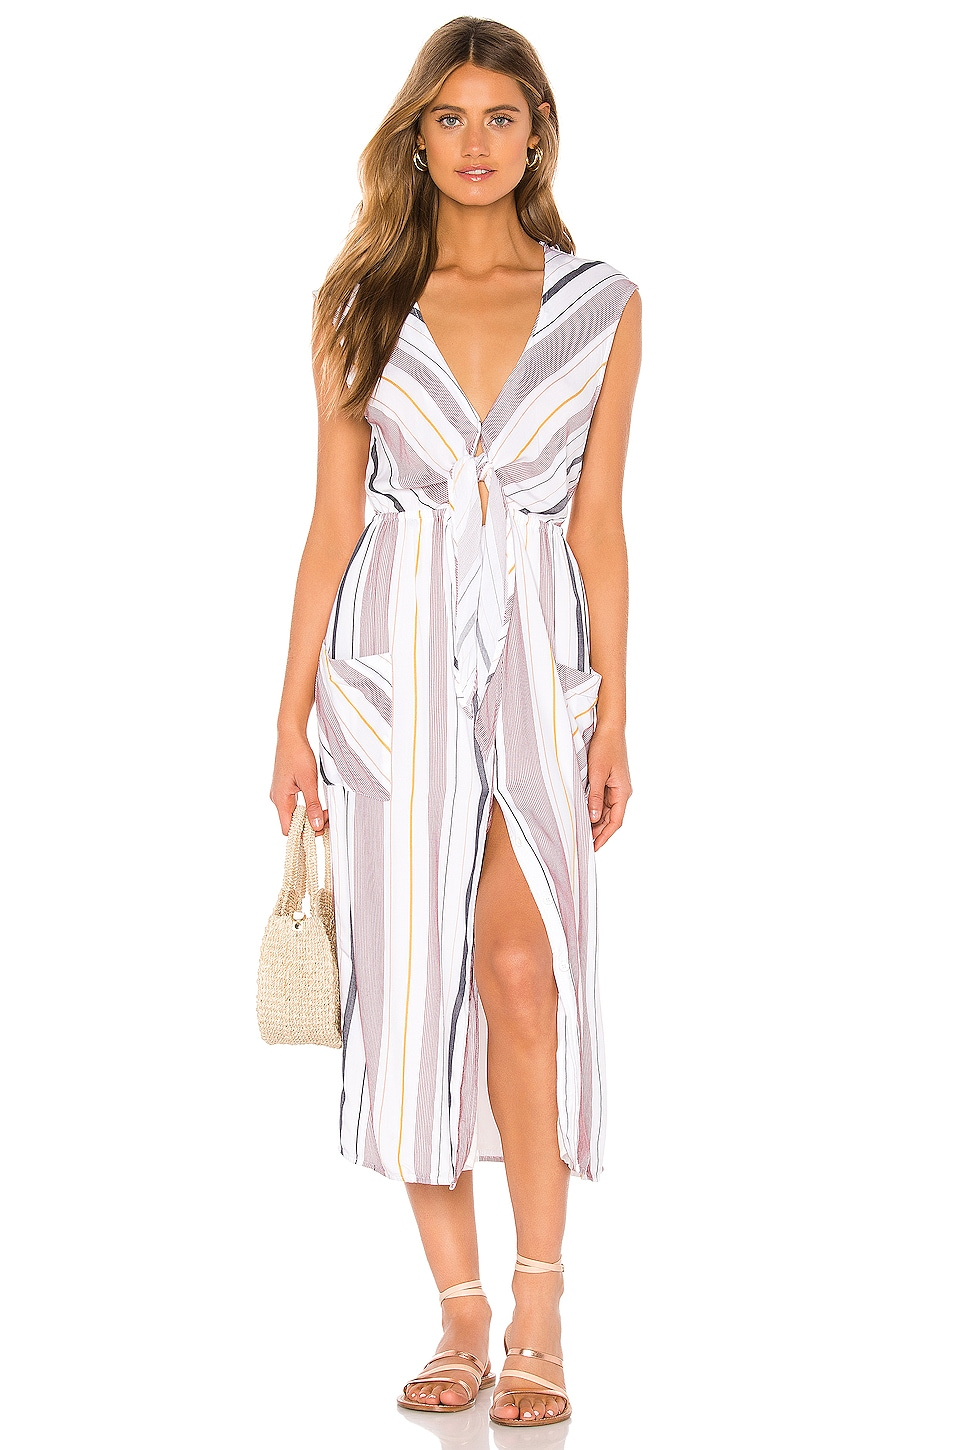 TAVIK Swimwear Jude Dress in White & Berry Stripe